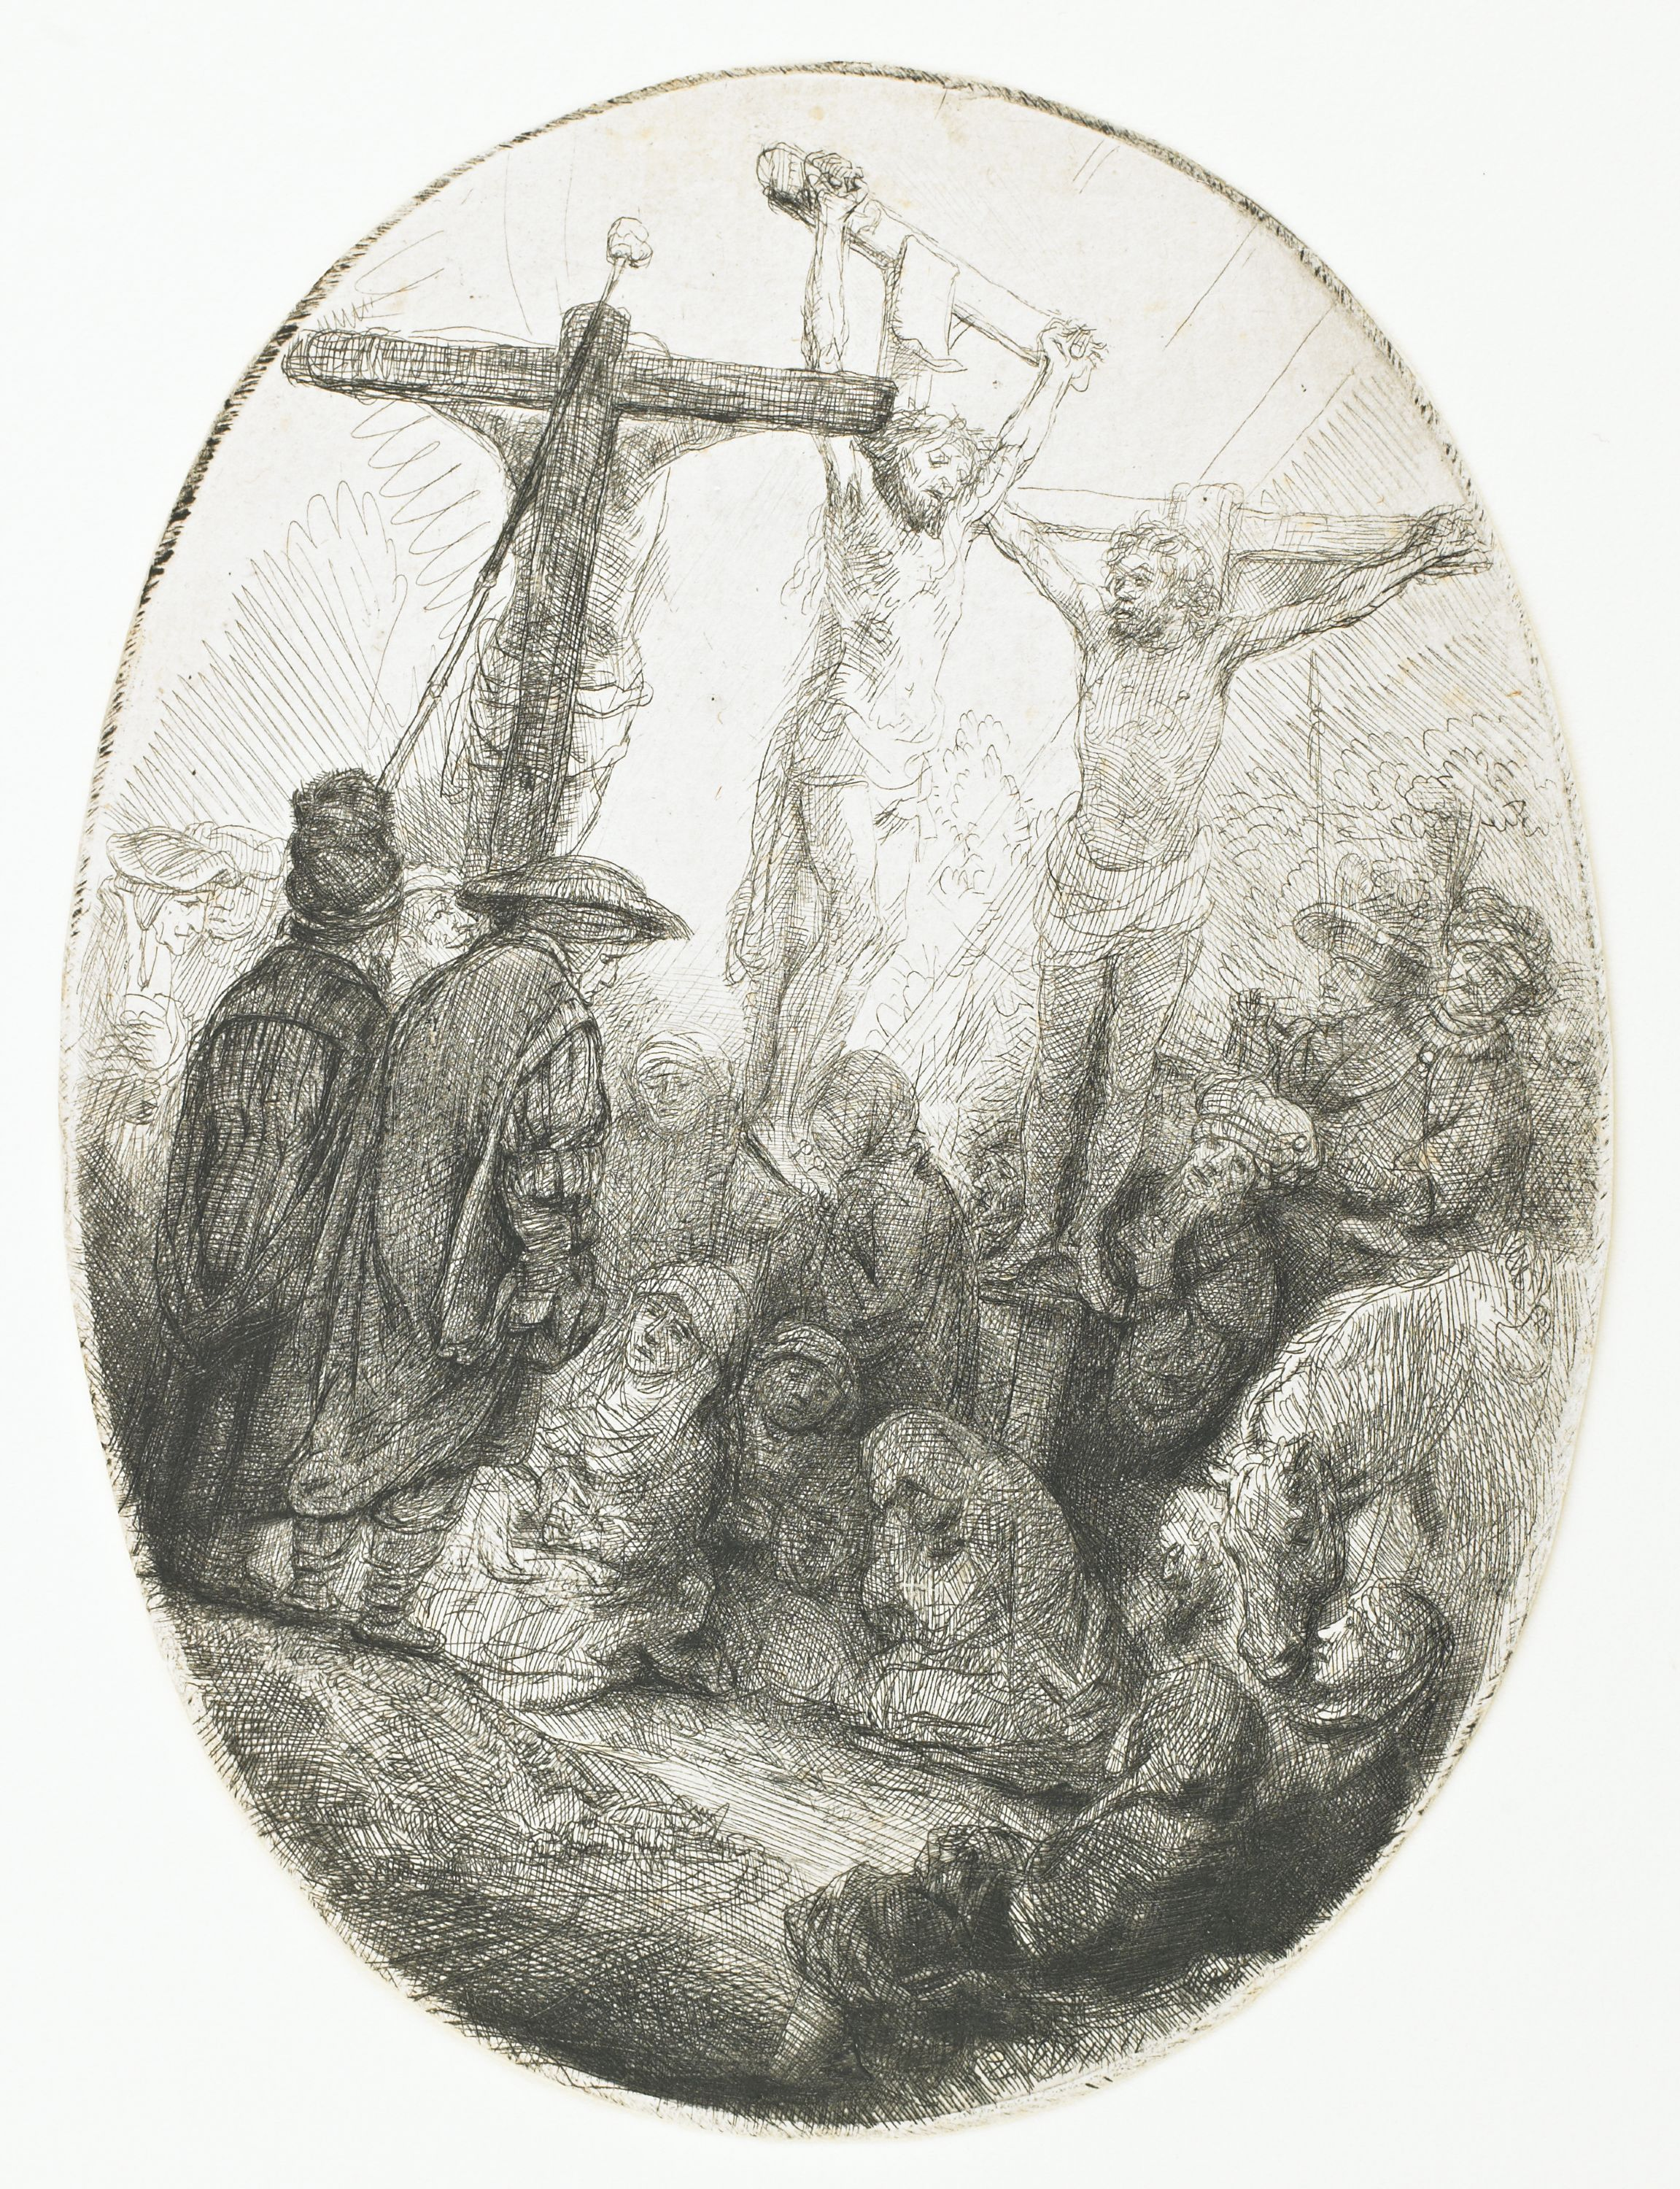 """The Crucifixion"" Rembrandt van Rijn (Netherlands, 1606-1669), etching state 2 of 2. Print. 1954.24."